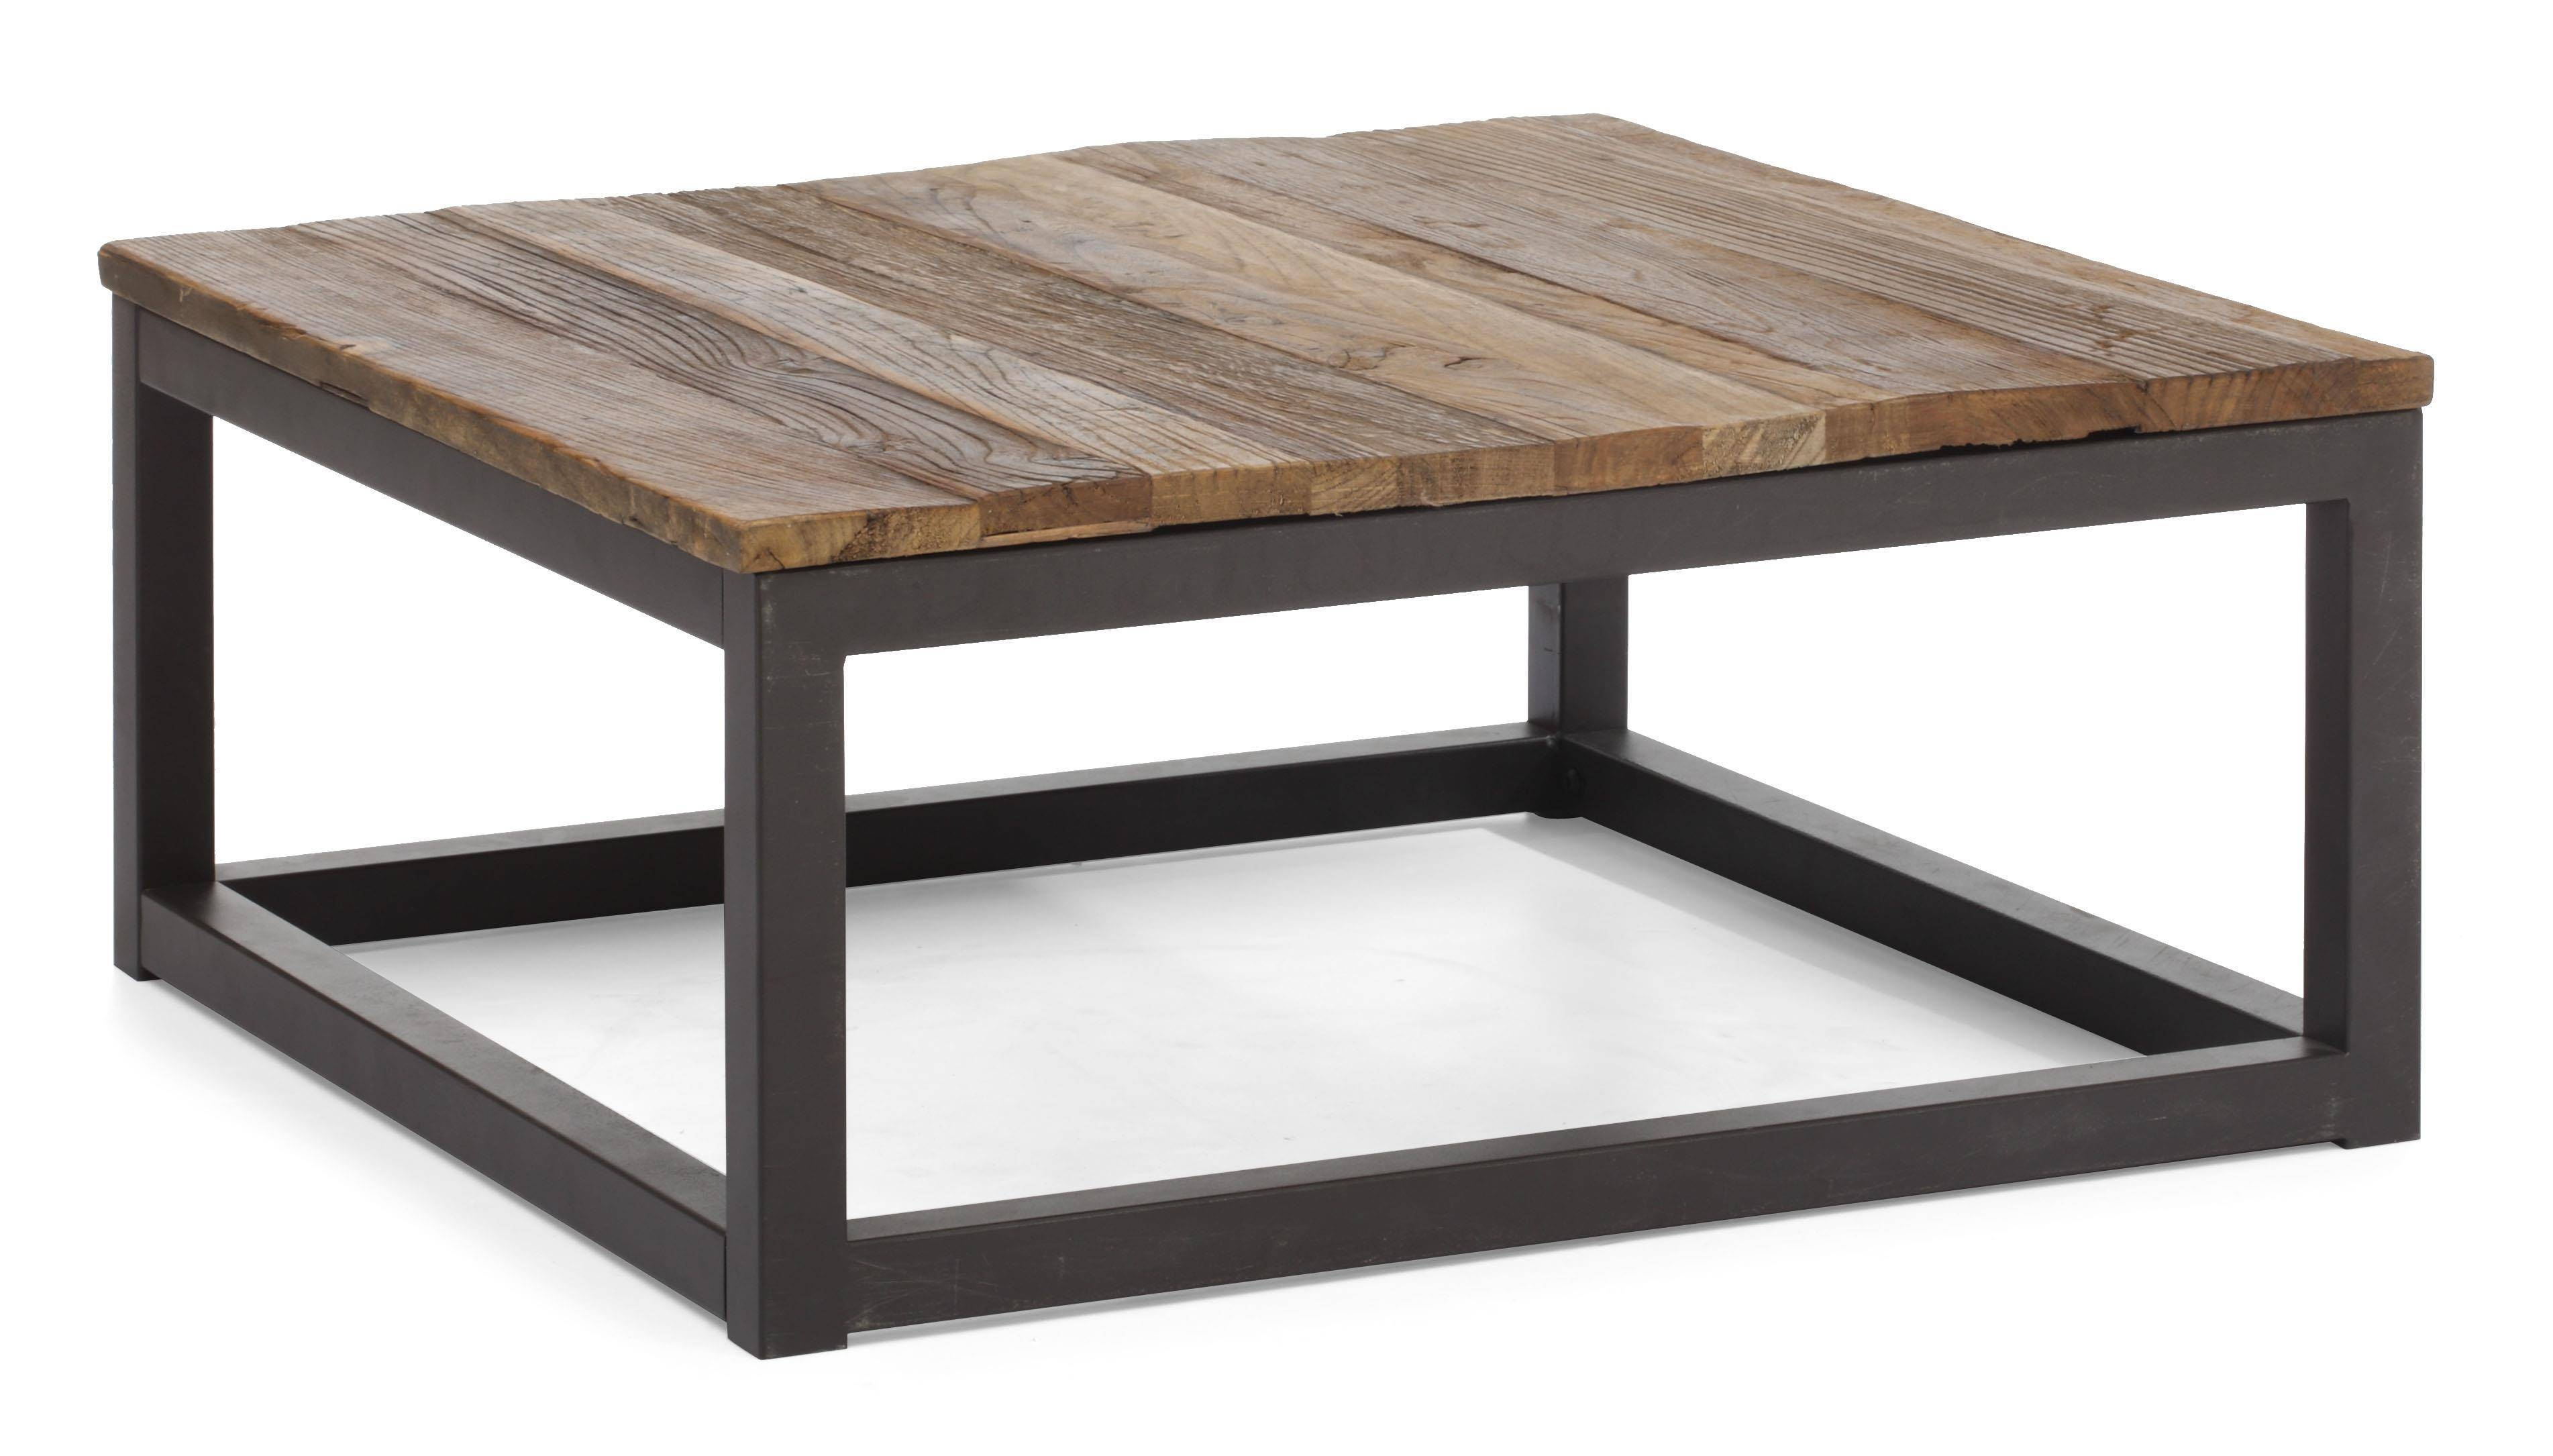 Low Height Coffee Table In Uk - Look Here — Coffee Tables Ideas with regard to Low Height Coffee Tables (Image 23 of 30)